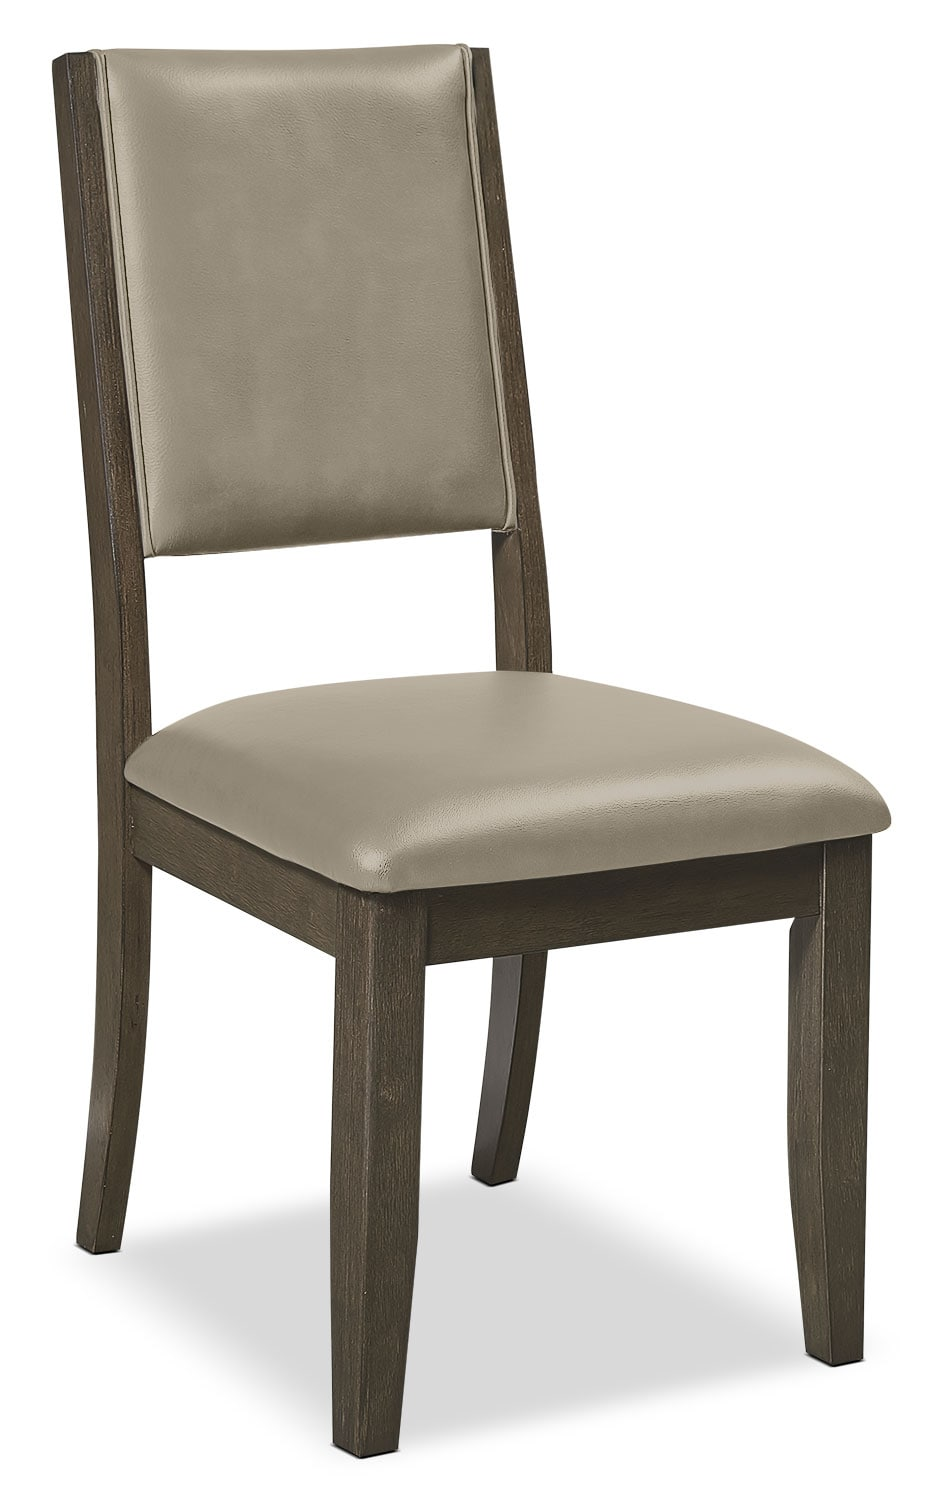 Banff Dining Chair – Quarry